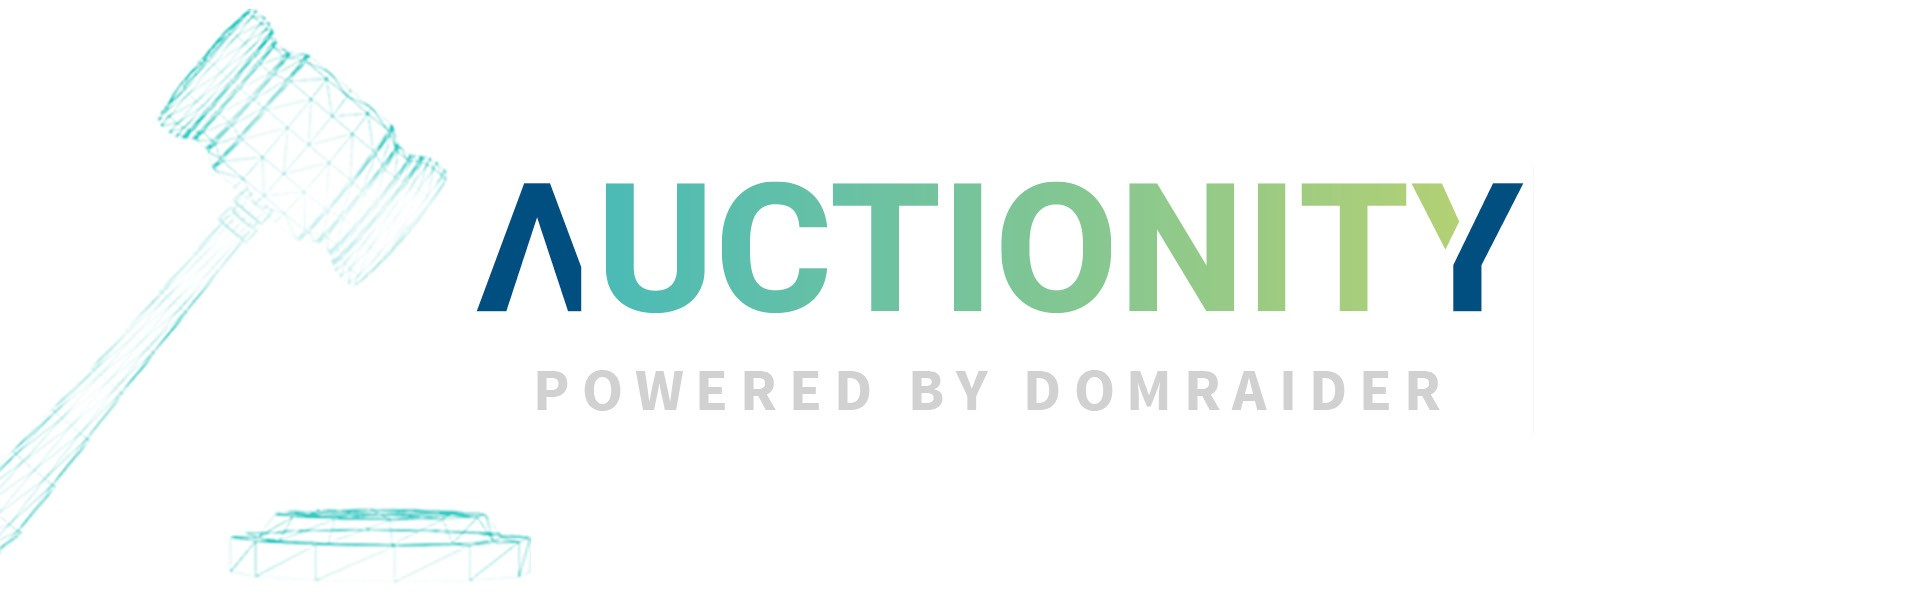 domraider group is pleased to present the initial version of its blockchain powered auctions solution under the new brand name auctionity